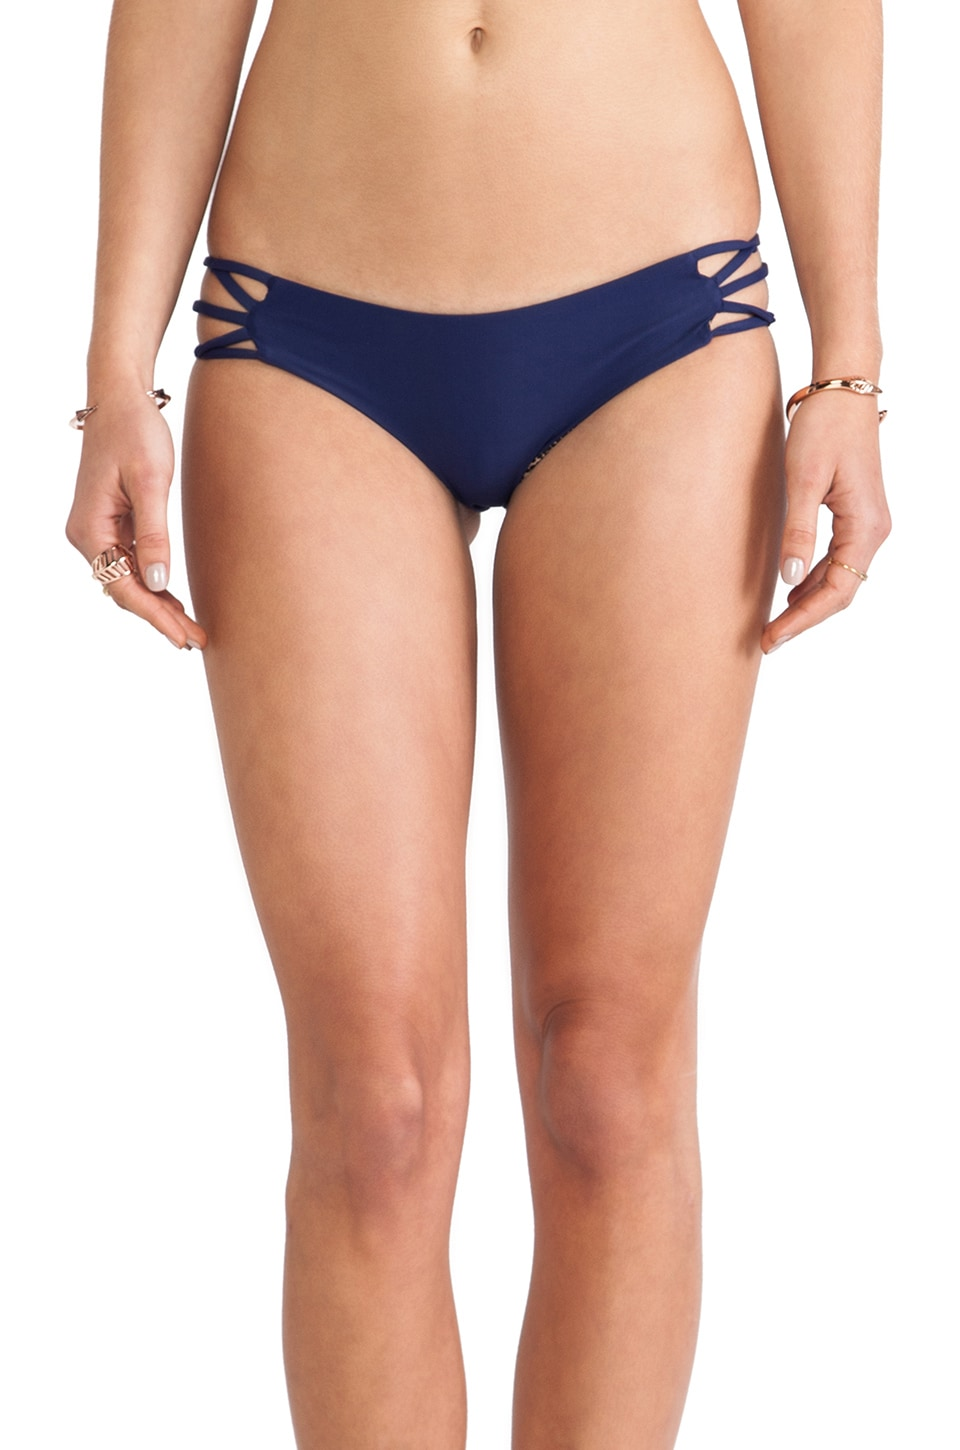 Acacia Swimwear La Riviera Bottom in Indigo